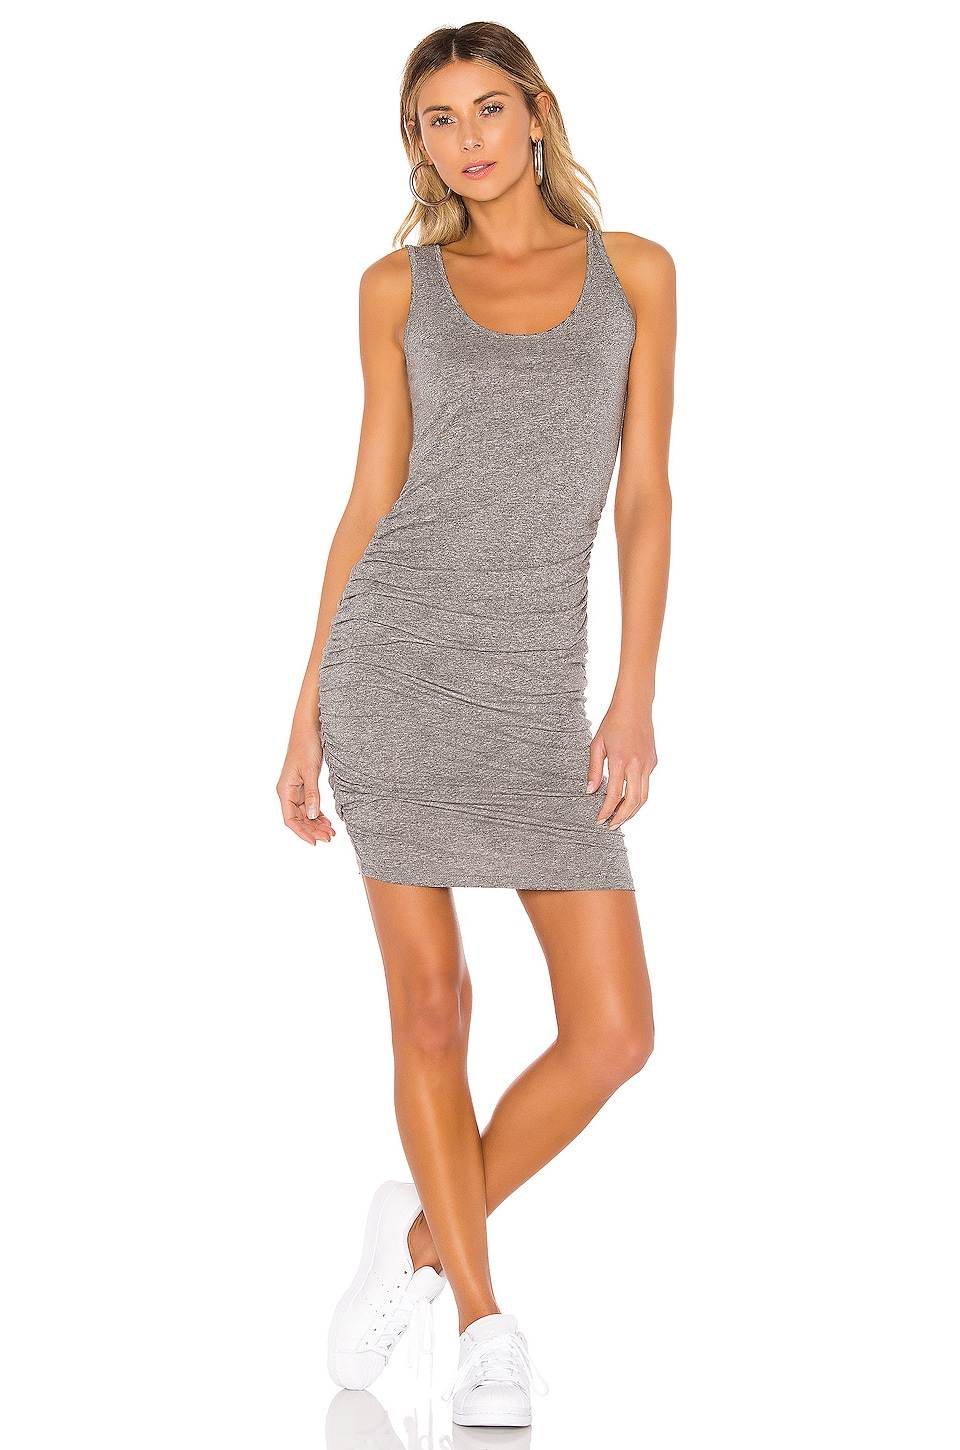 n:philanthropy Echo Dress in Heather Grey